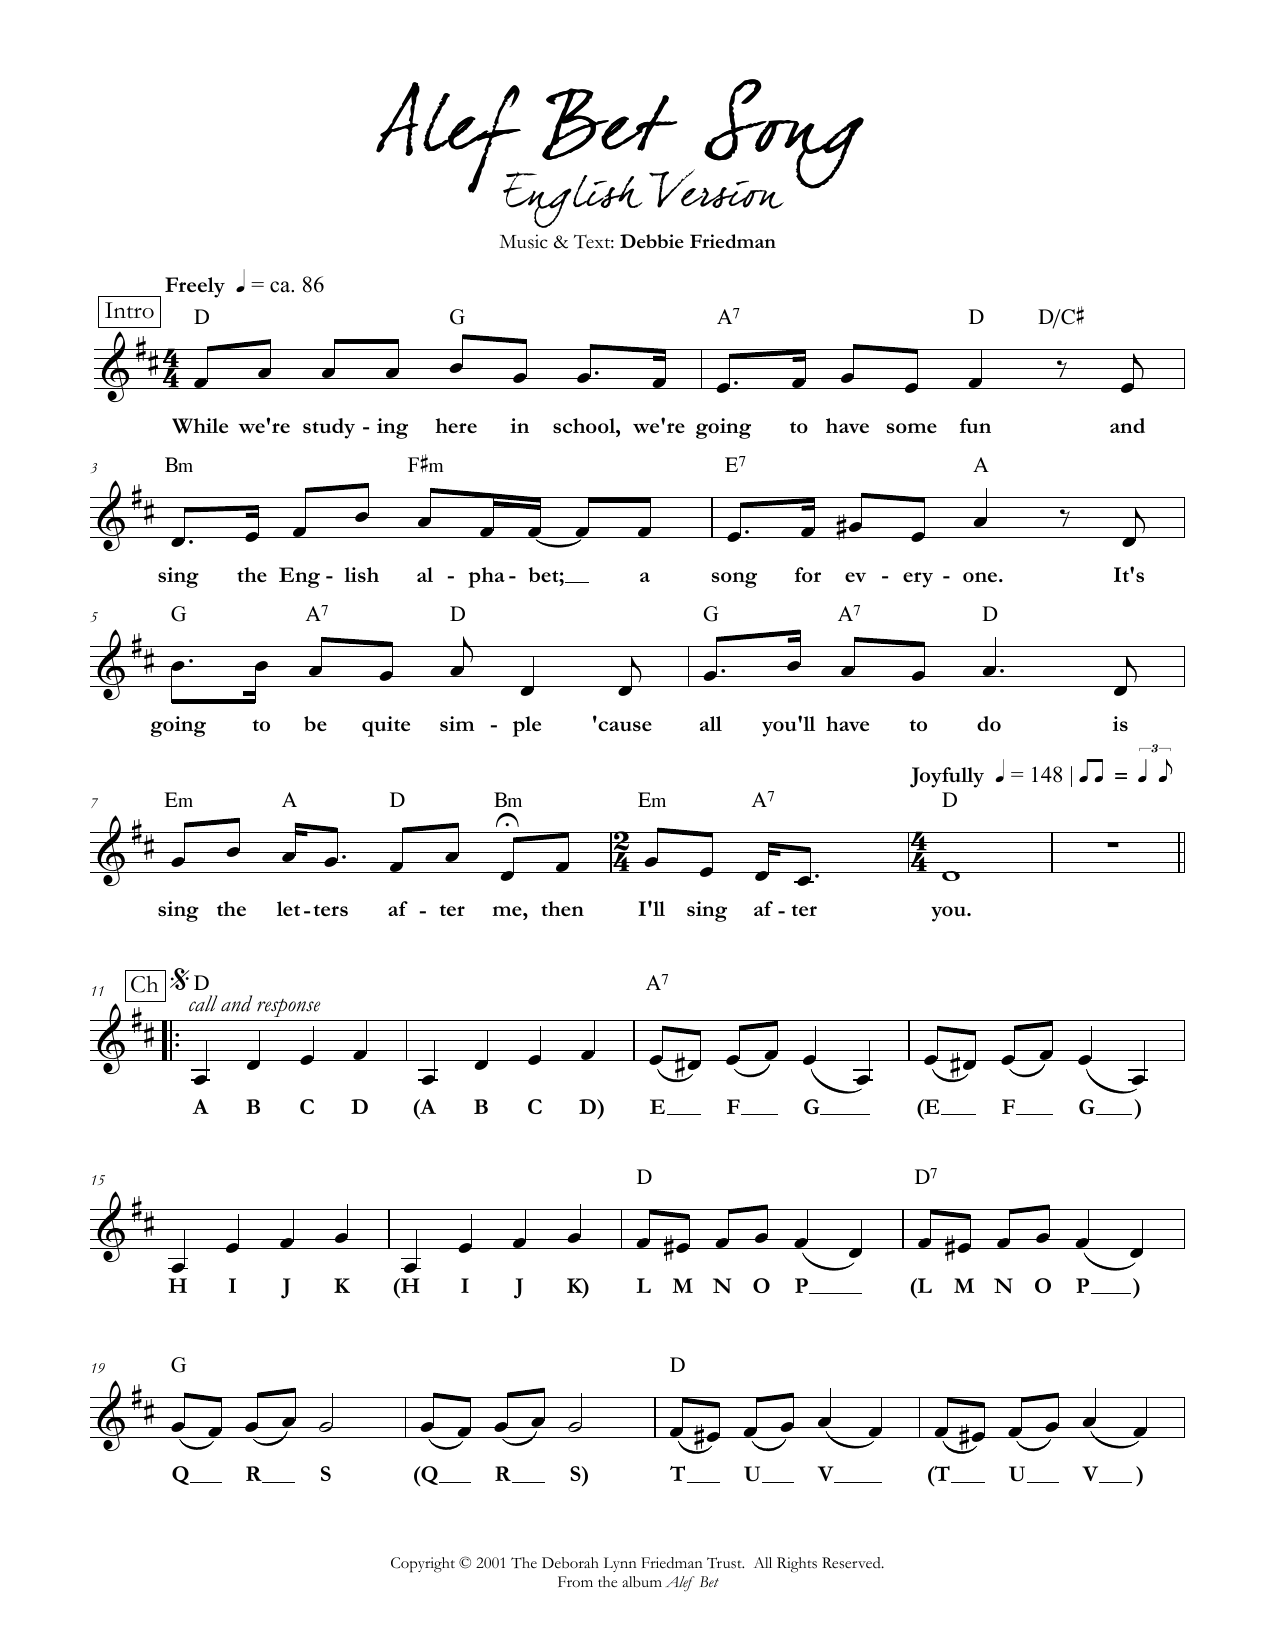 Debbie Friedman Alef Bet Song (English Version) sheet music preview music notes and score for Lead Sheet / Fake Book including 3 page(s)